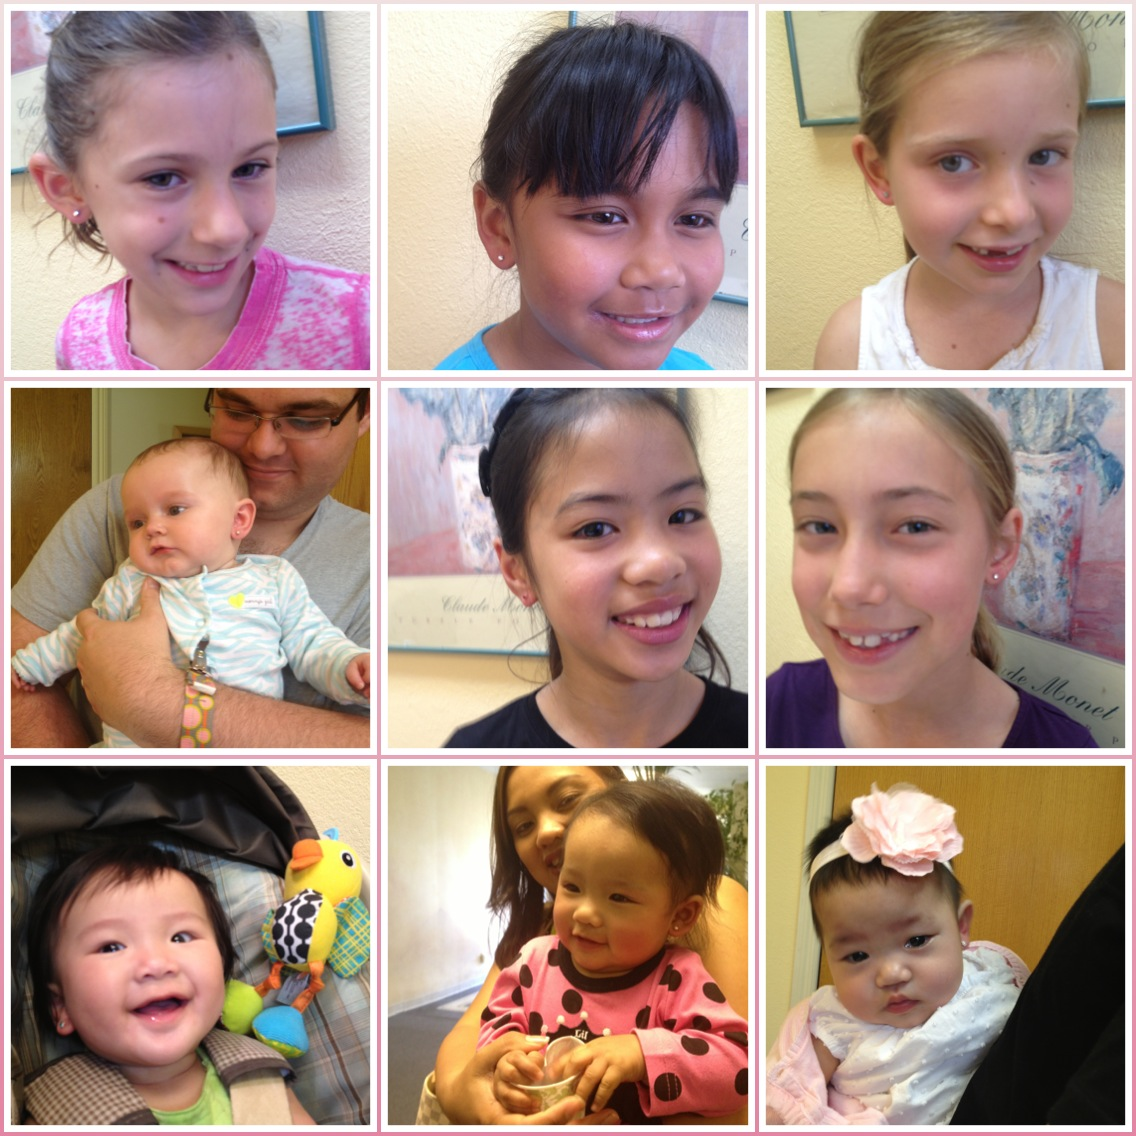 Specializing In Piercing Infants Thru Adults No Body Piercing Baby Ear Piercing Infant Ear Piercing Ear Piercing Babies Ear Piercing For Infants Re Piercing After Surgery